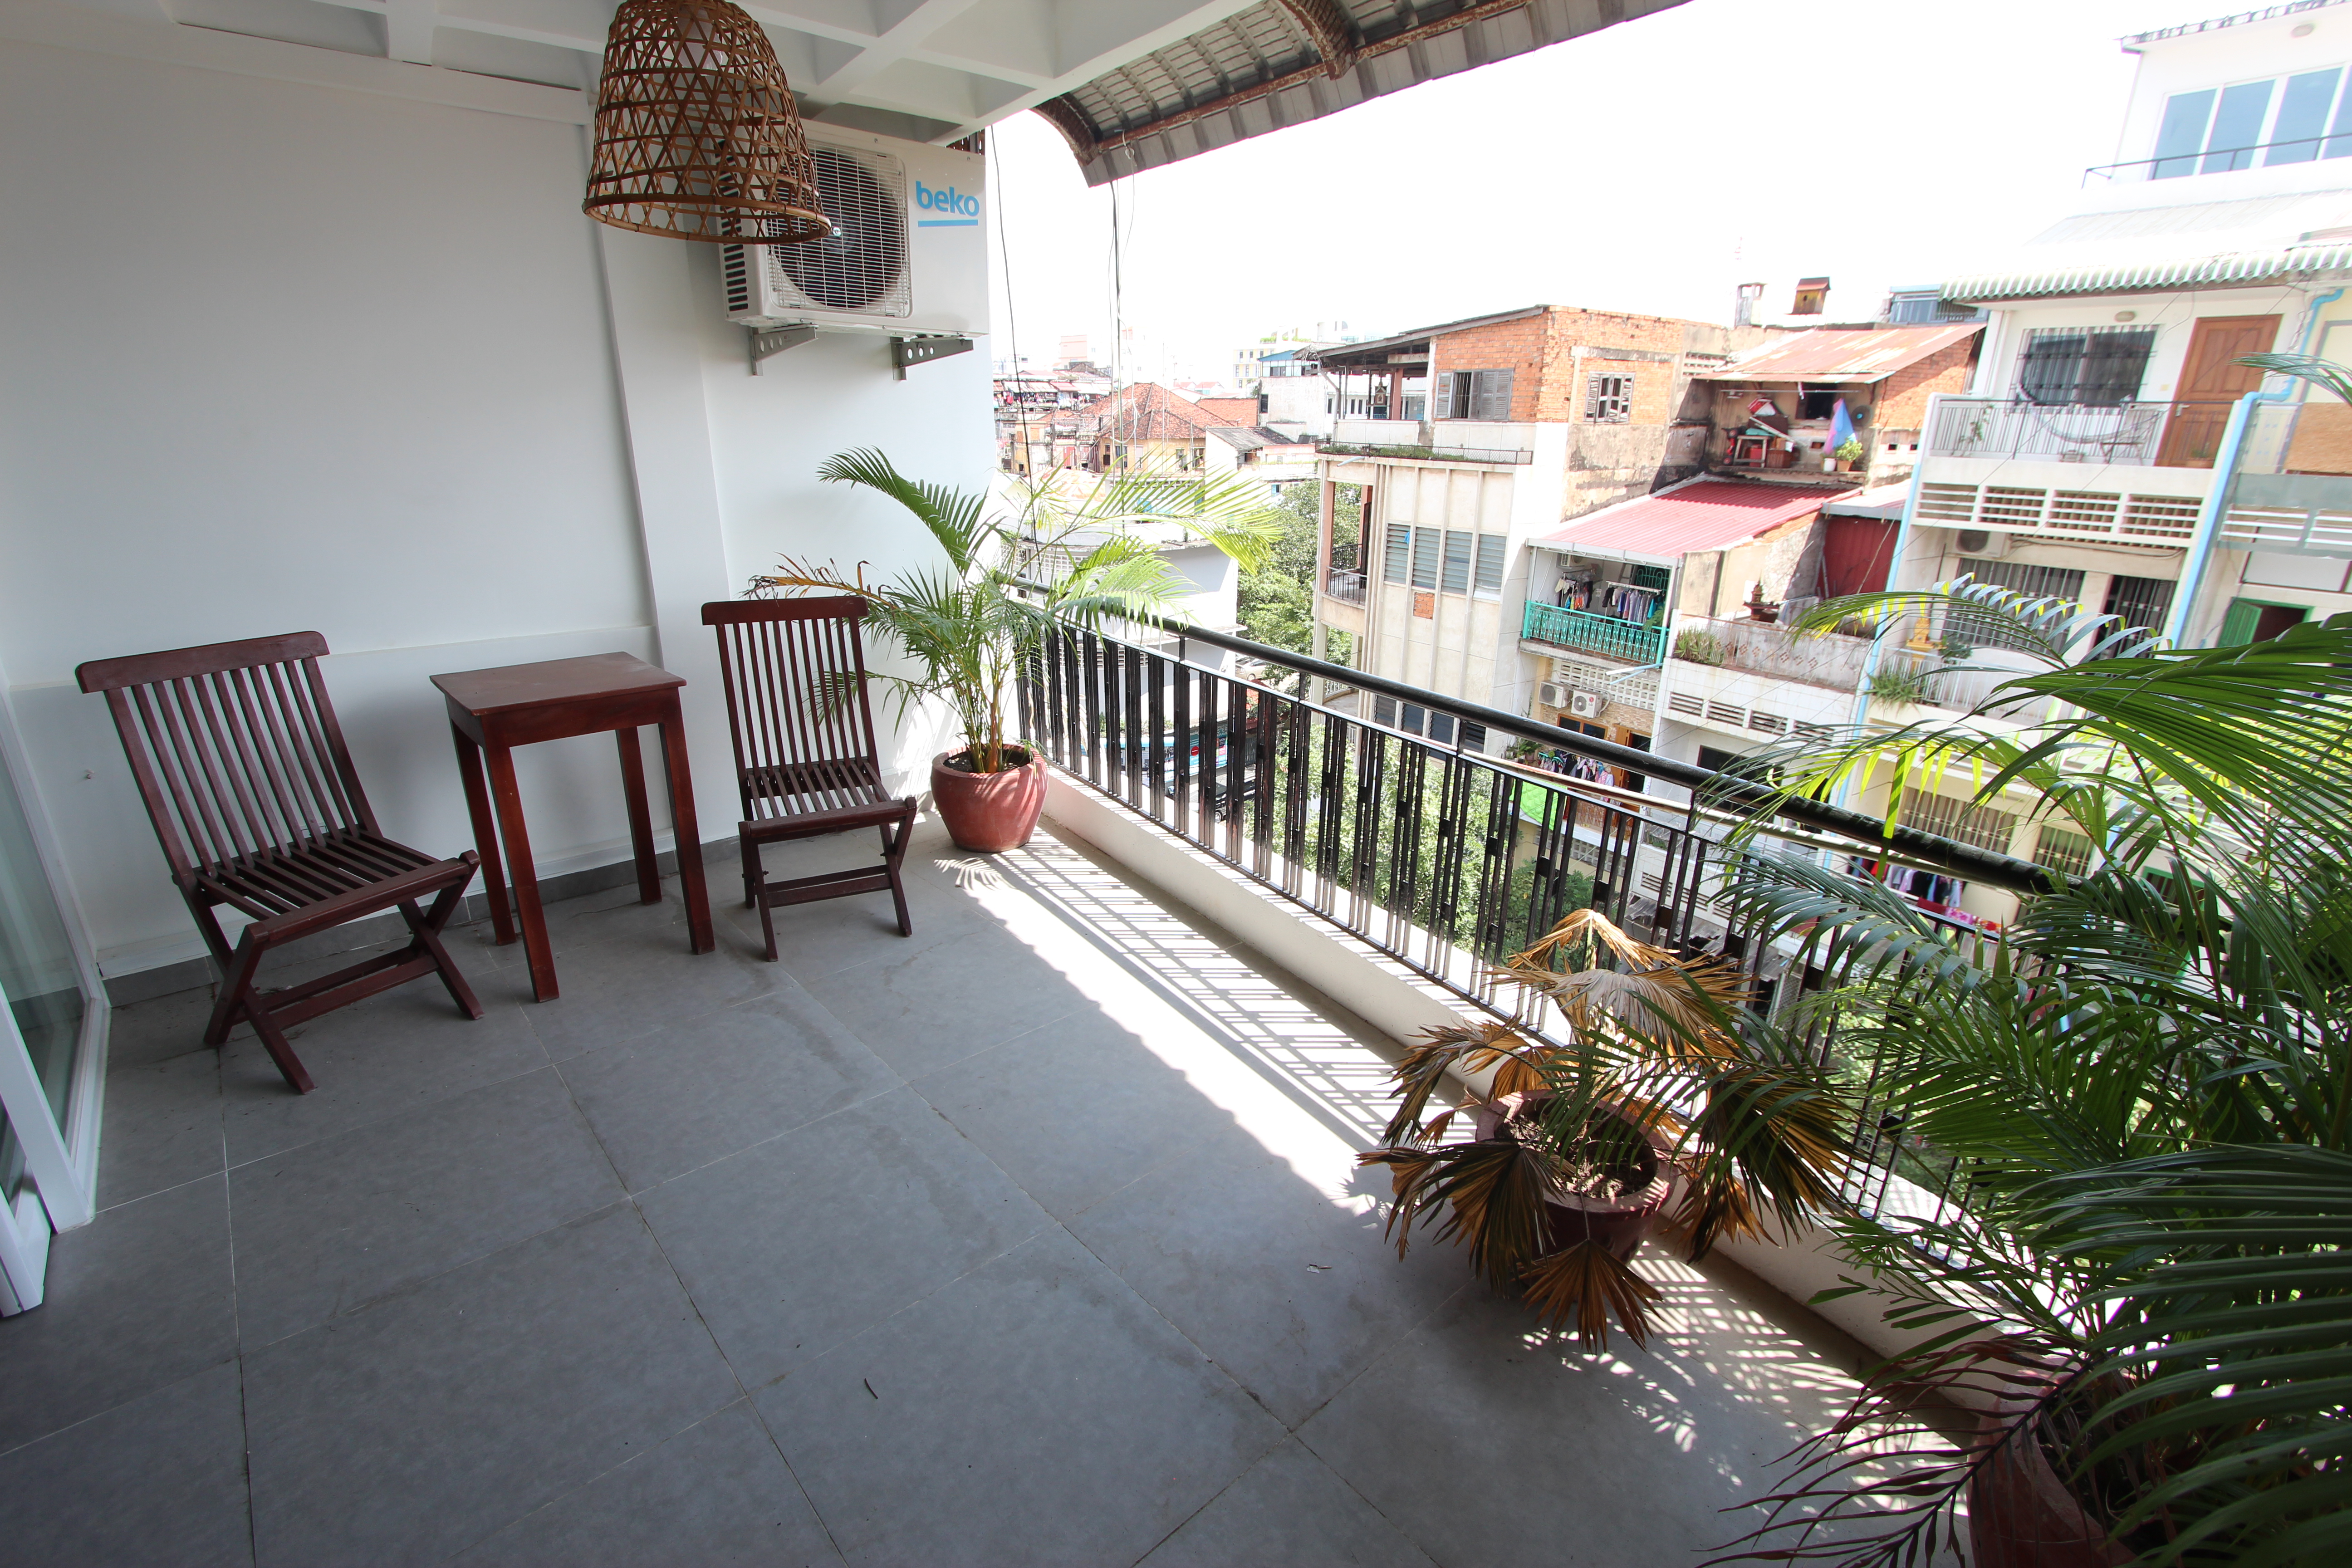 Newly Renovated 2 Bedroom Apartment In Daun Penh | Phnom Penh Real Estate